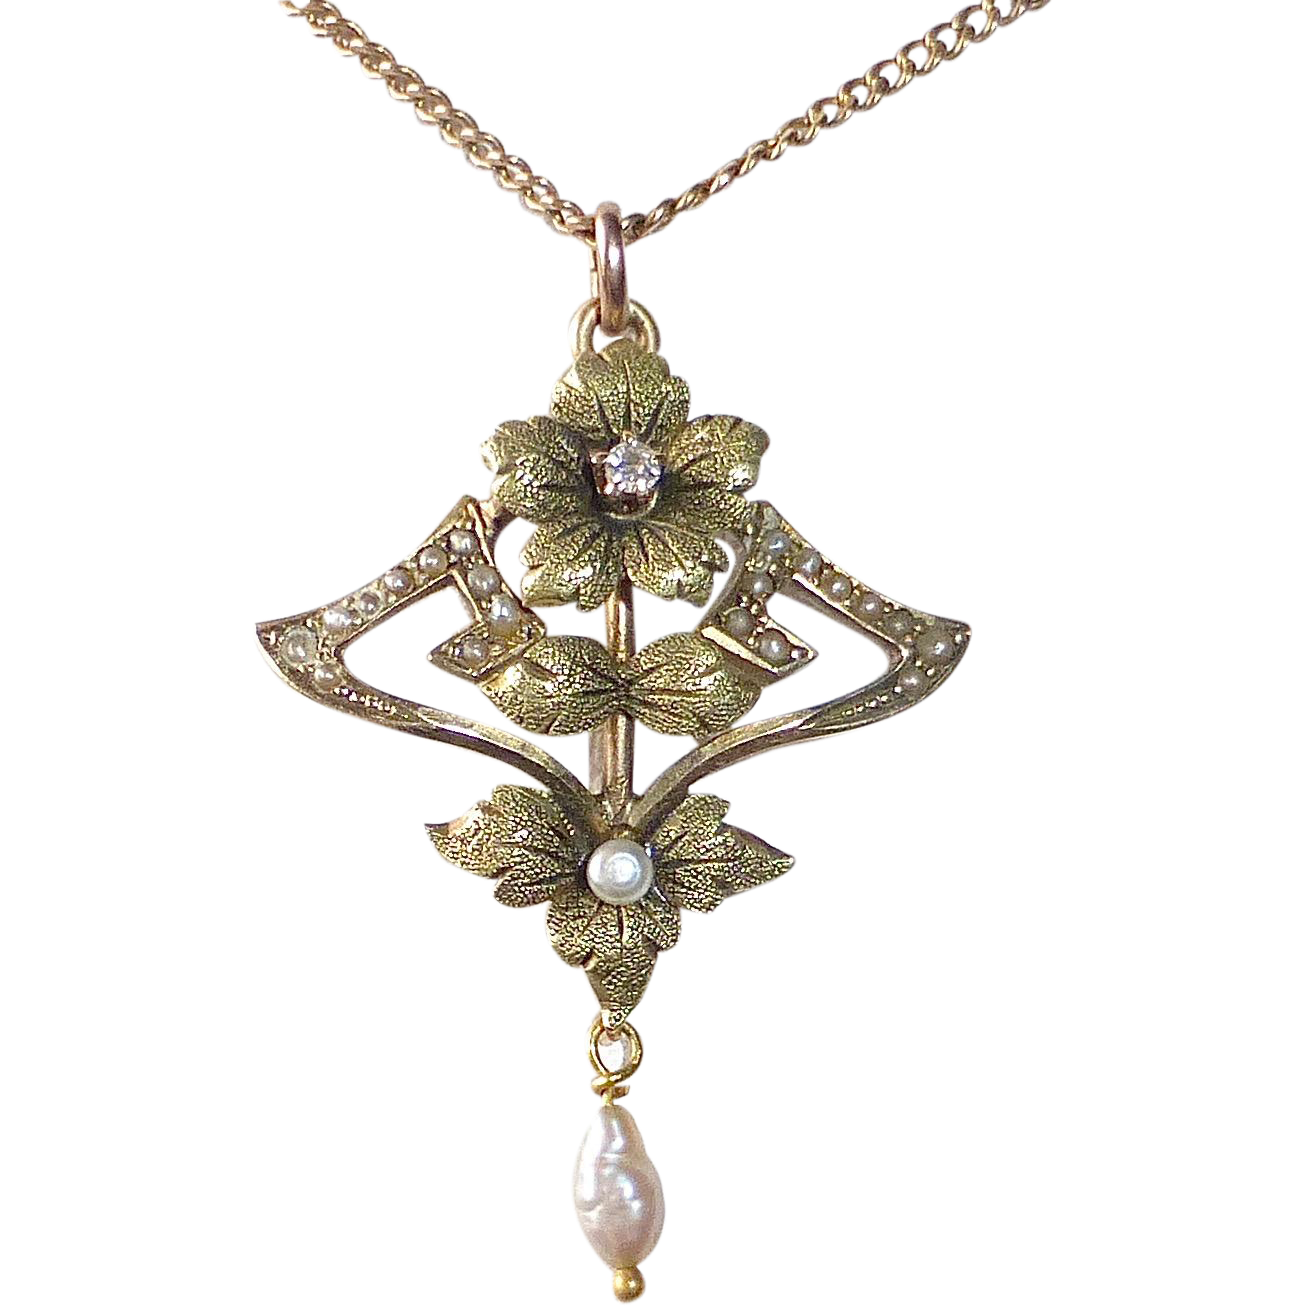 14k Rose & Green Gold Edwardian Lavaliere Pendant Diamond & Seed Pearls